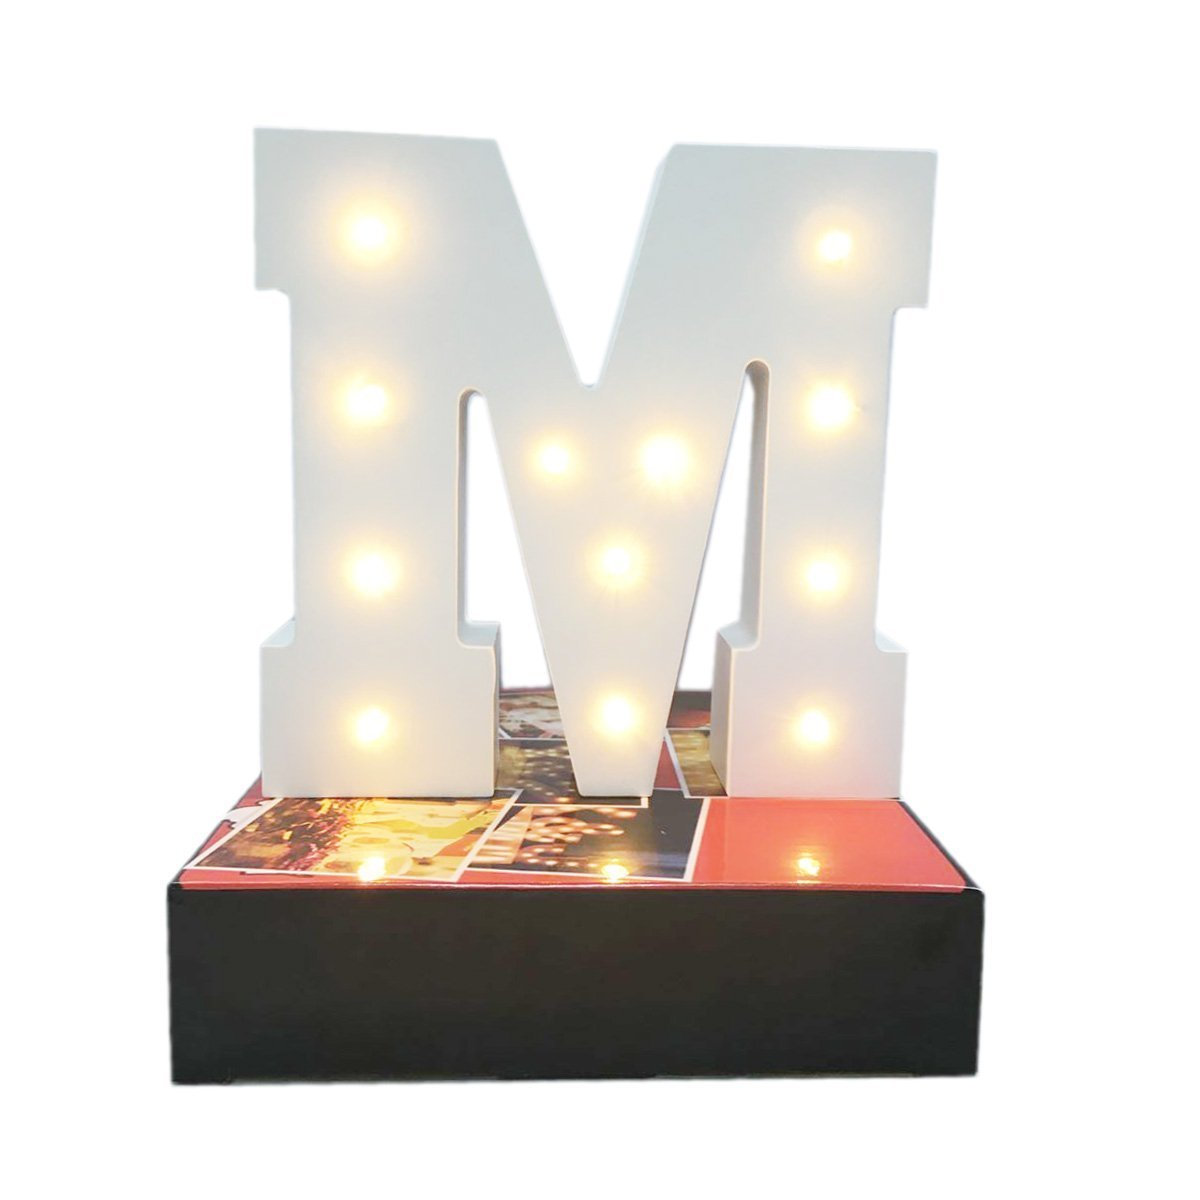 Decorative Light Up Wooden Alphabet Letter,WONFAST DIY LED Letter Lights Sign Party Wedding Holiday Marquee Decor Battery Operated,Warm White,Alphabet (M)